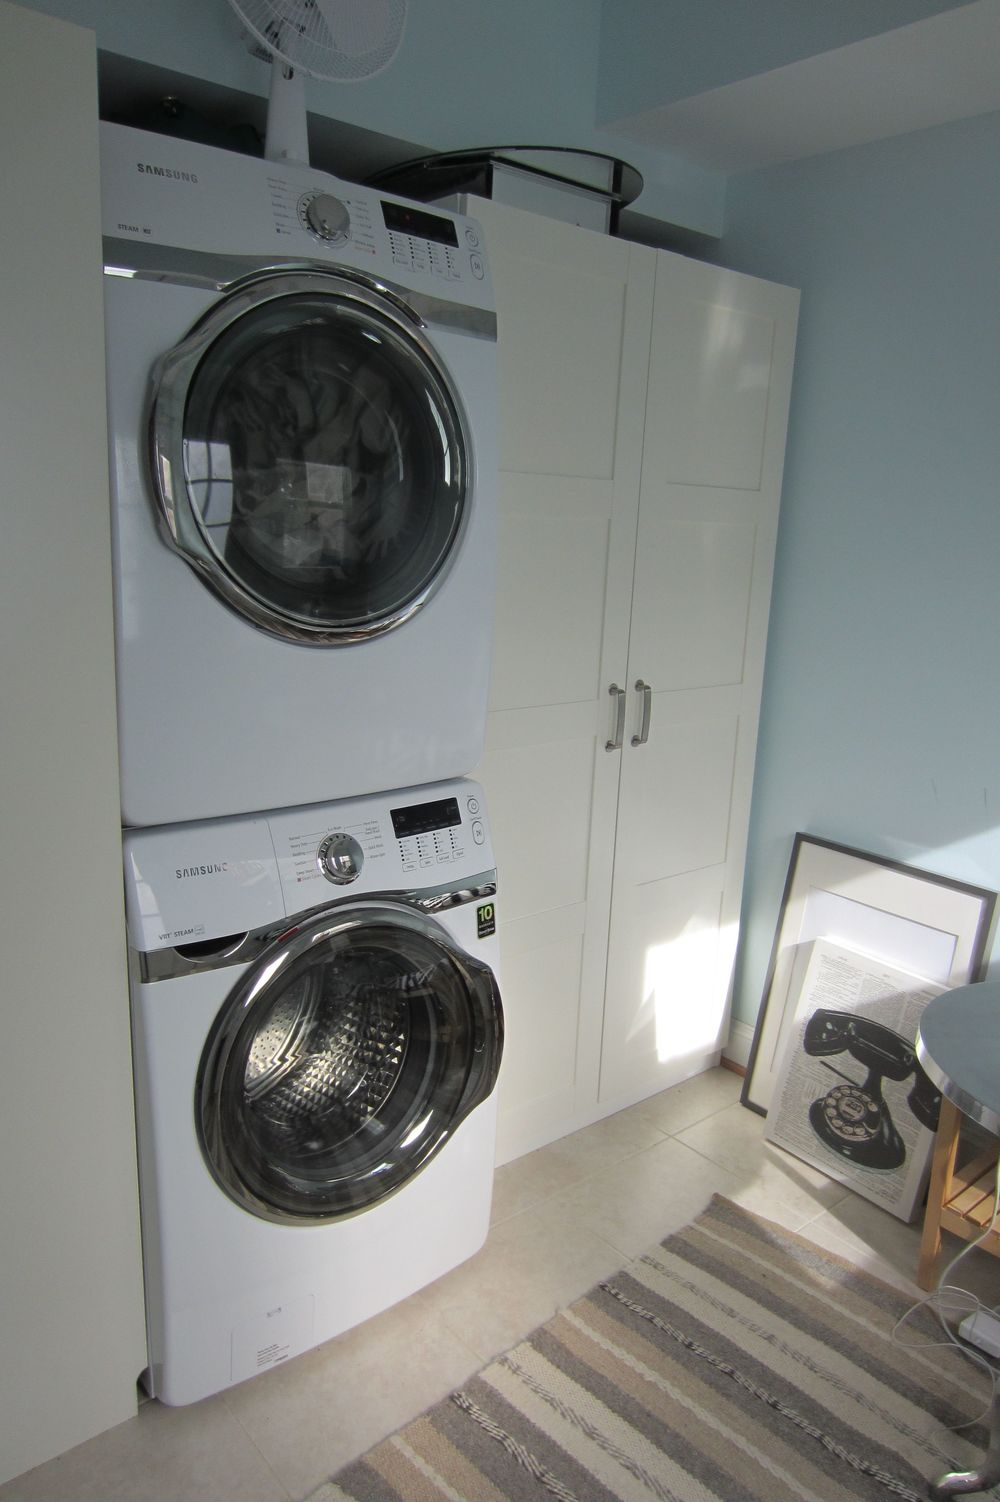 Samsung stacking washer and dryer and Ikea wardrobe